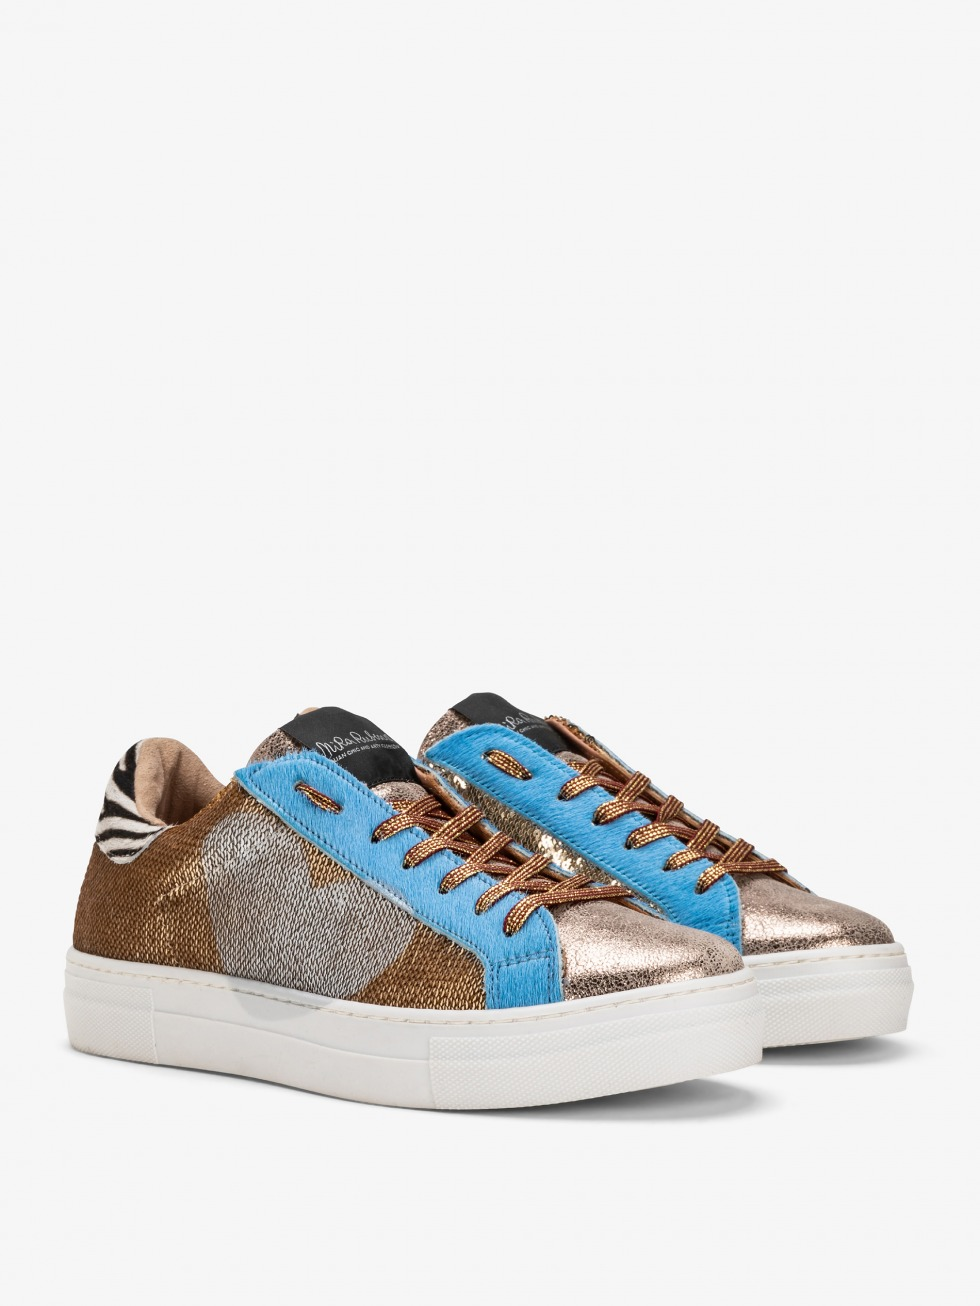 Sparkle Gold Sky Martini Sneakers - Heart